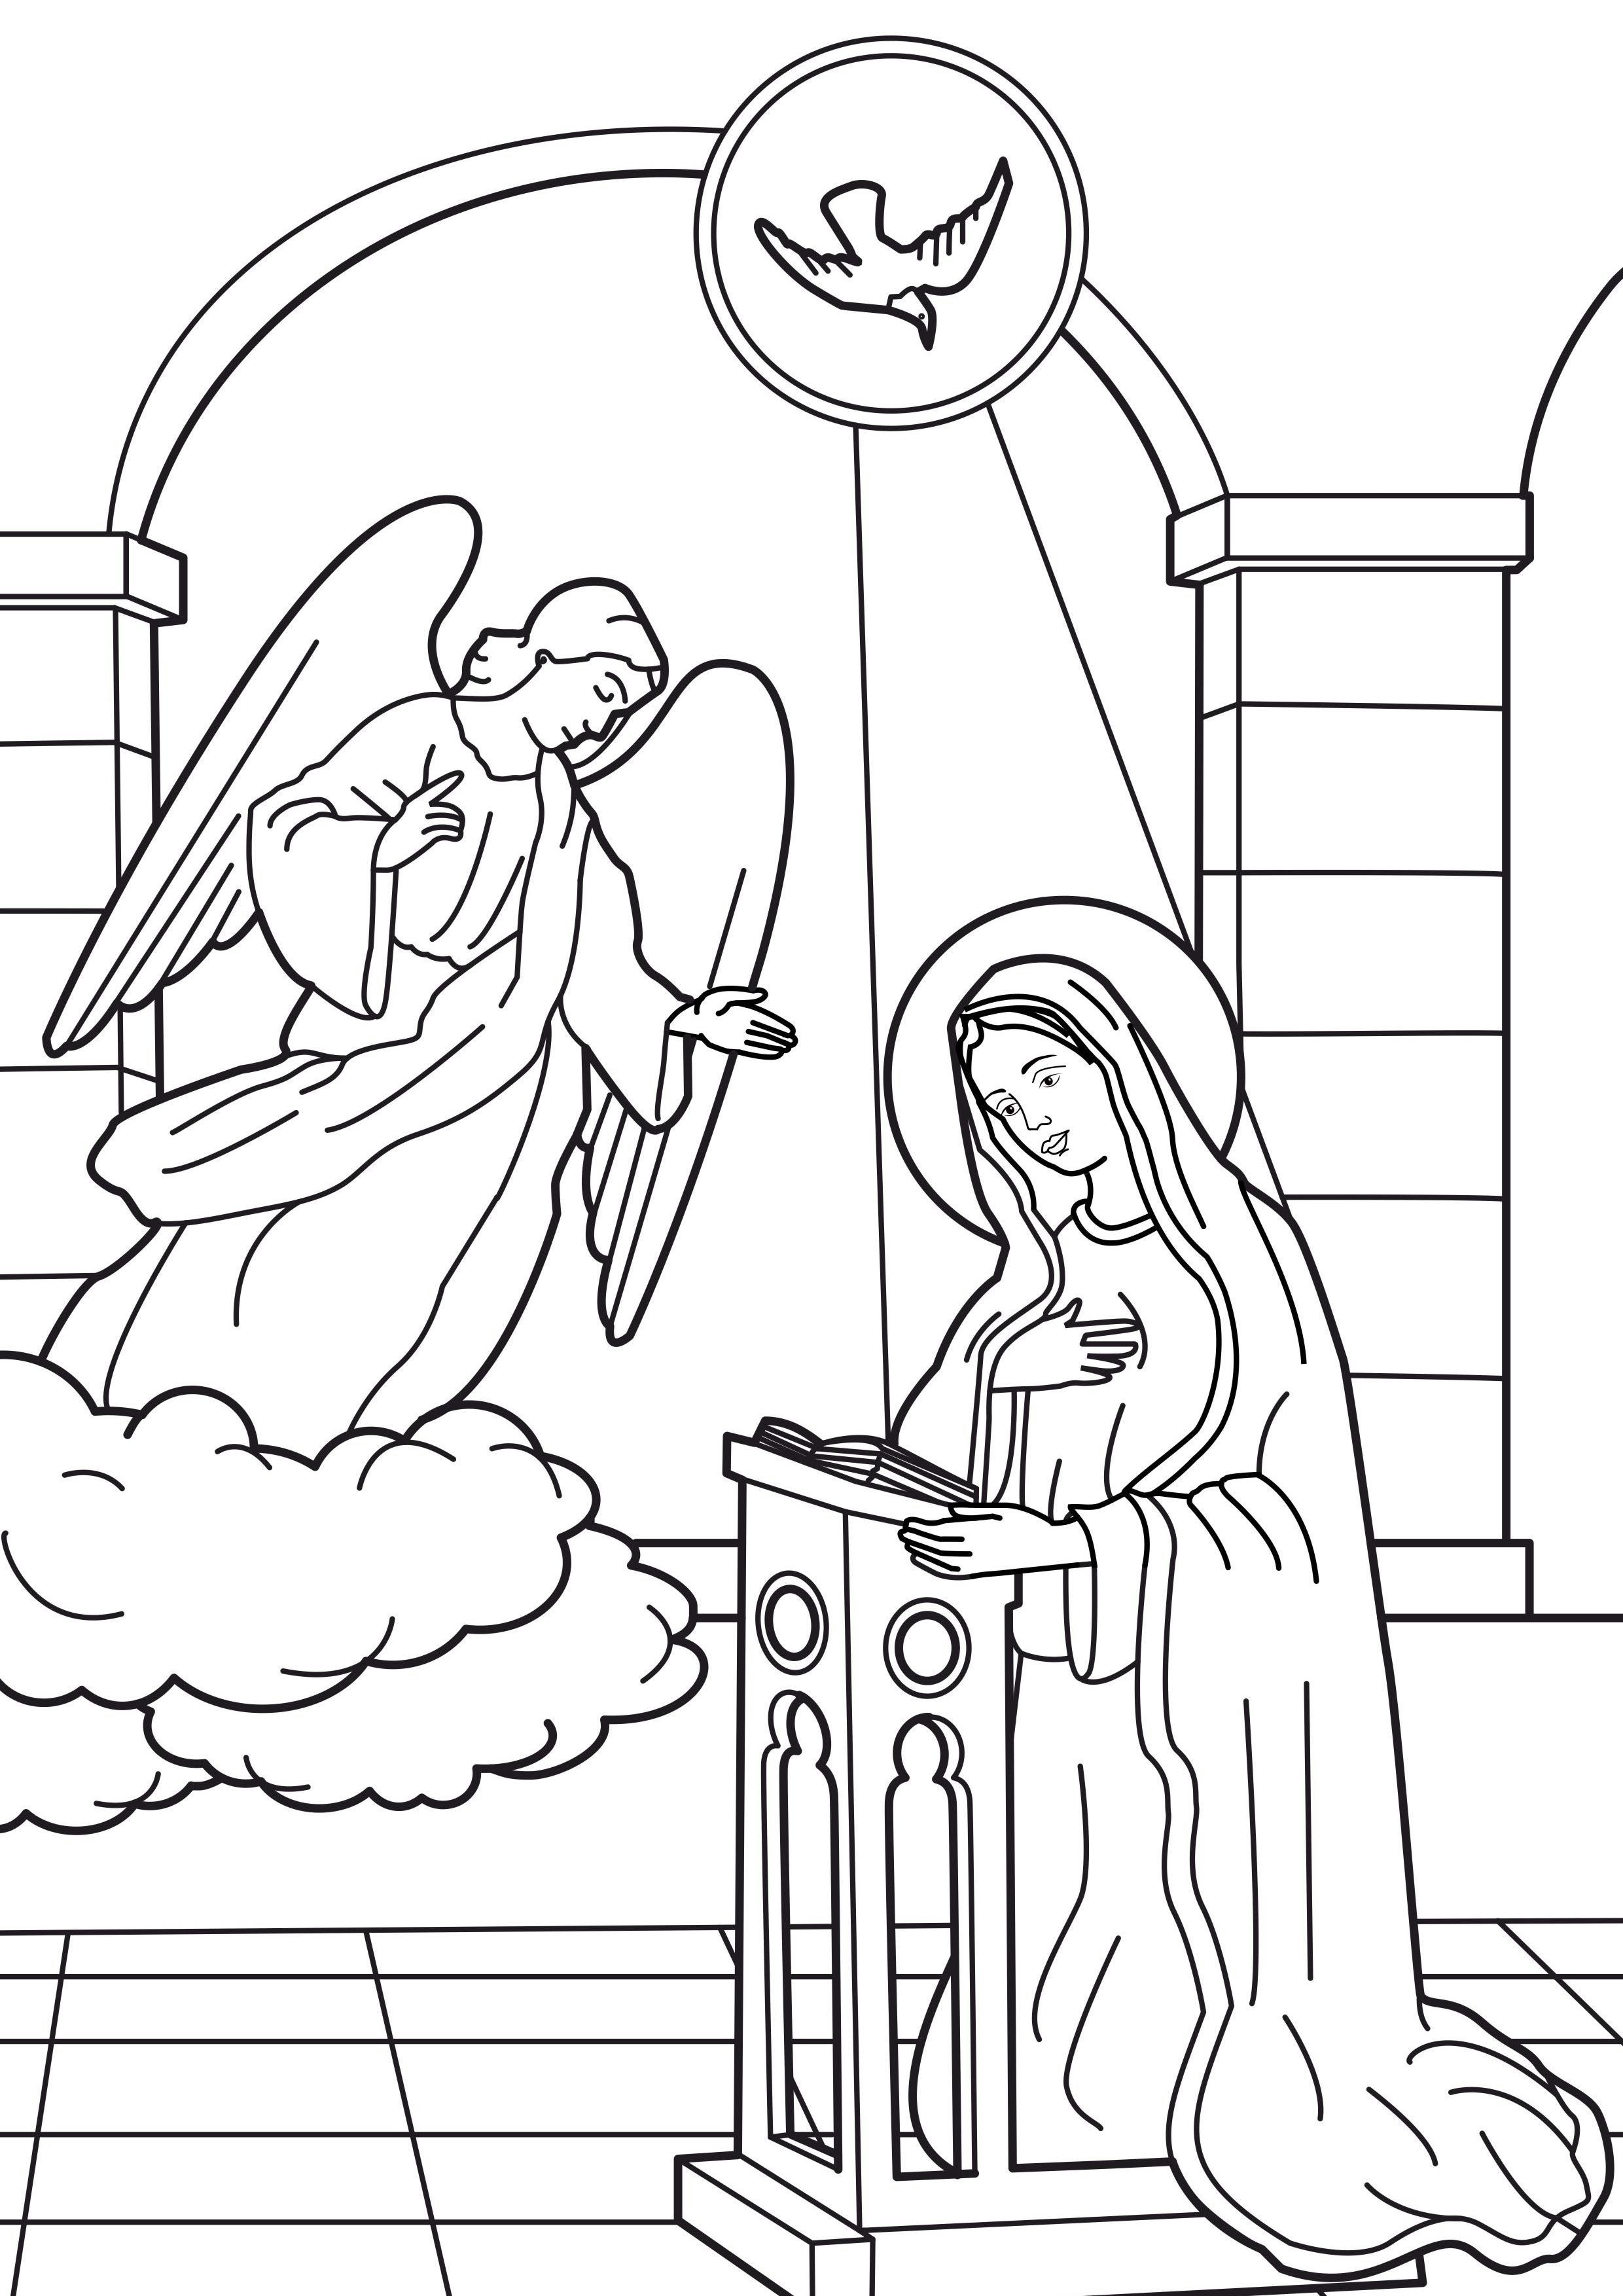 Vzpeqfdeouaq Jpg 2480 3508 Sunday School Coloring Pages Bible